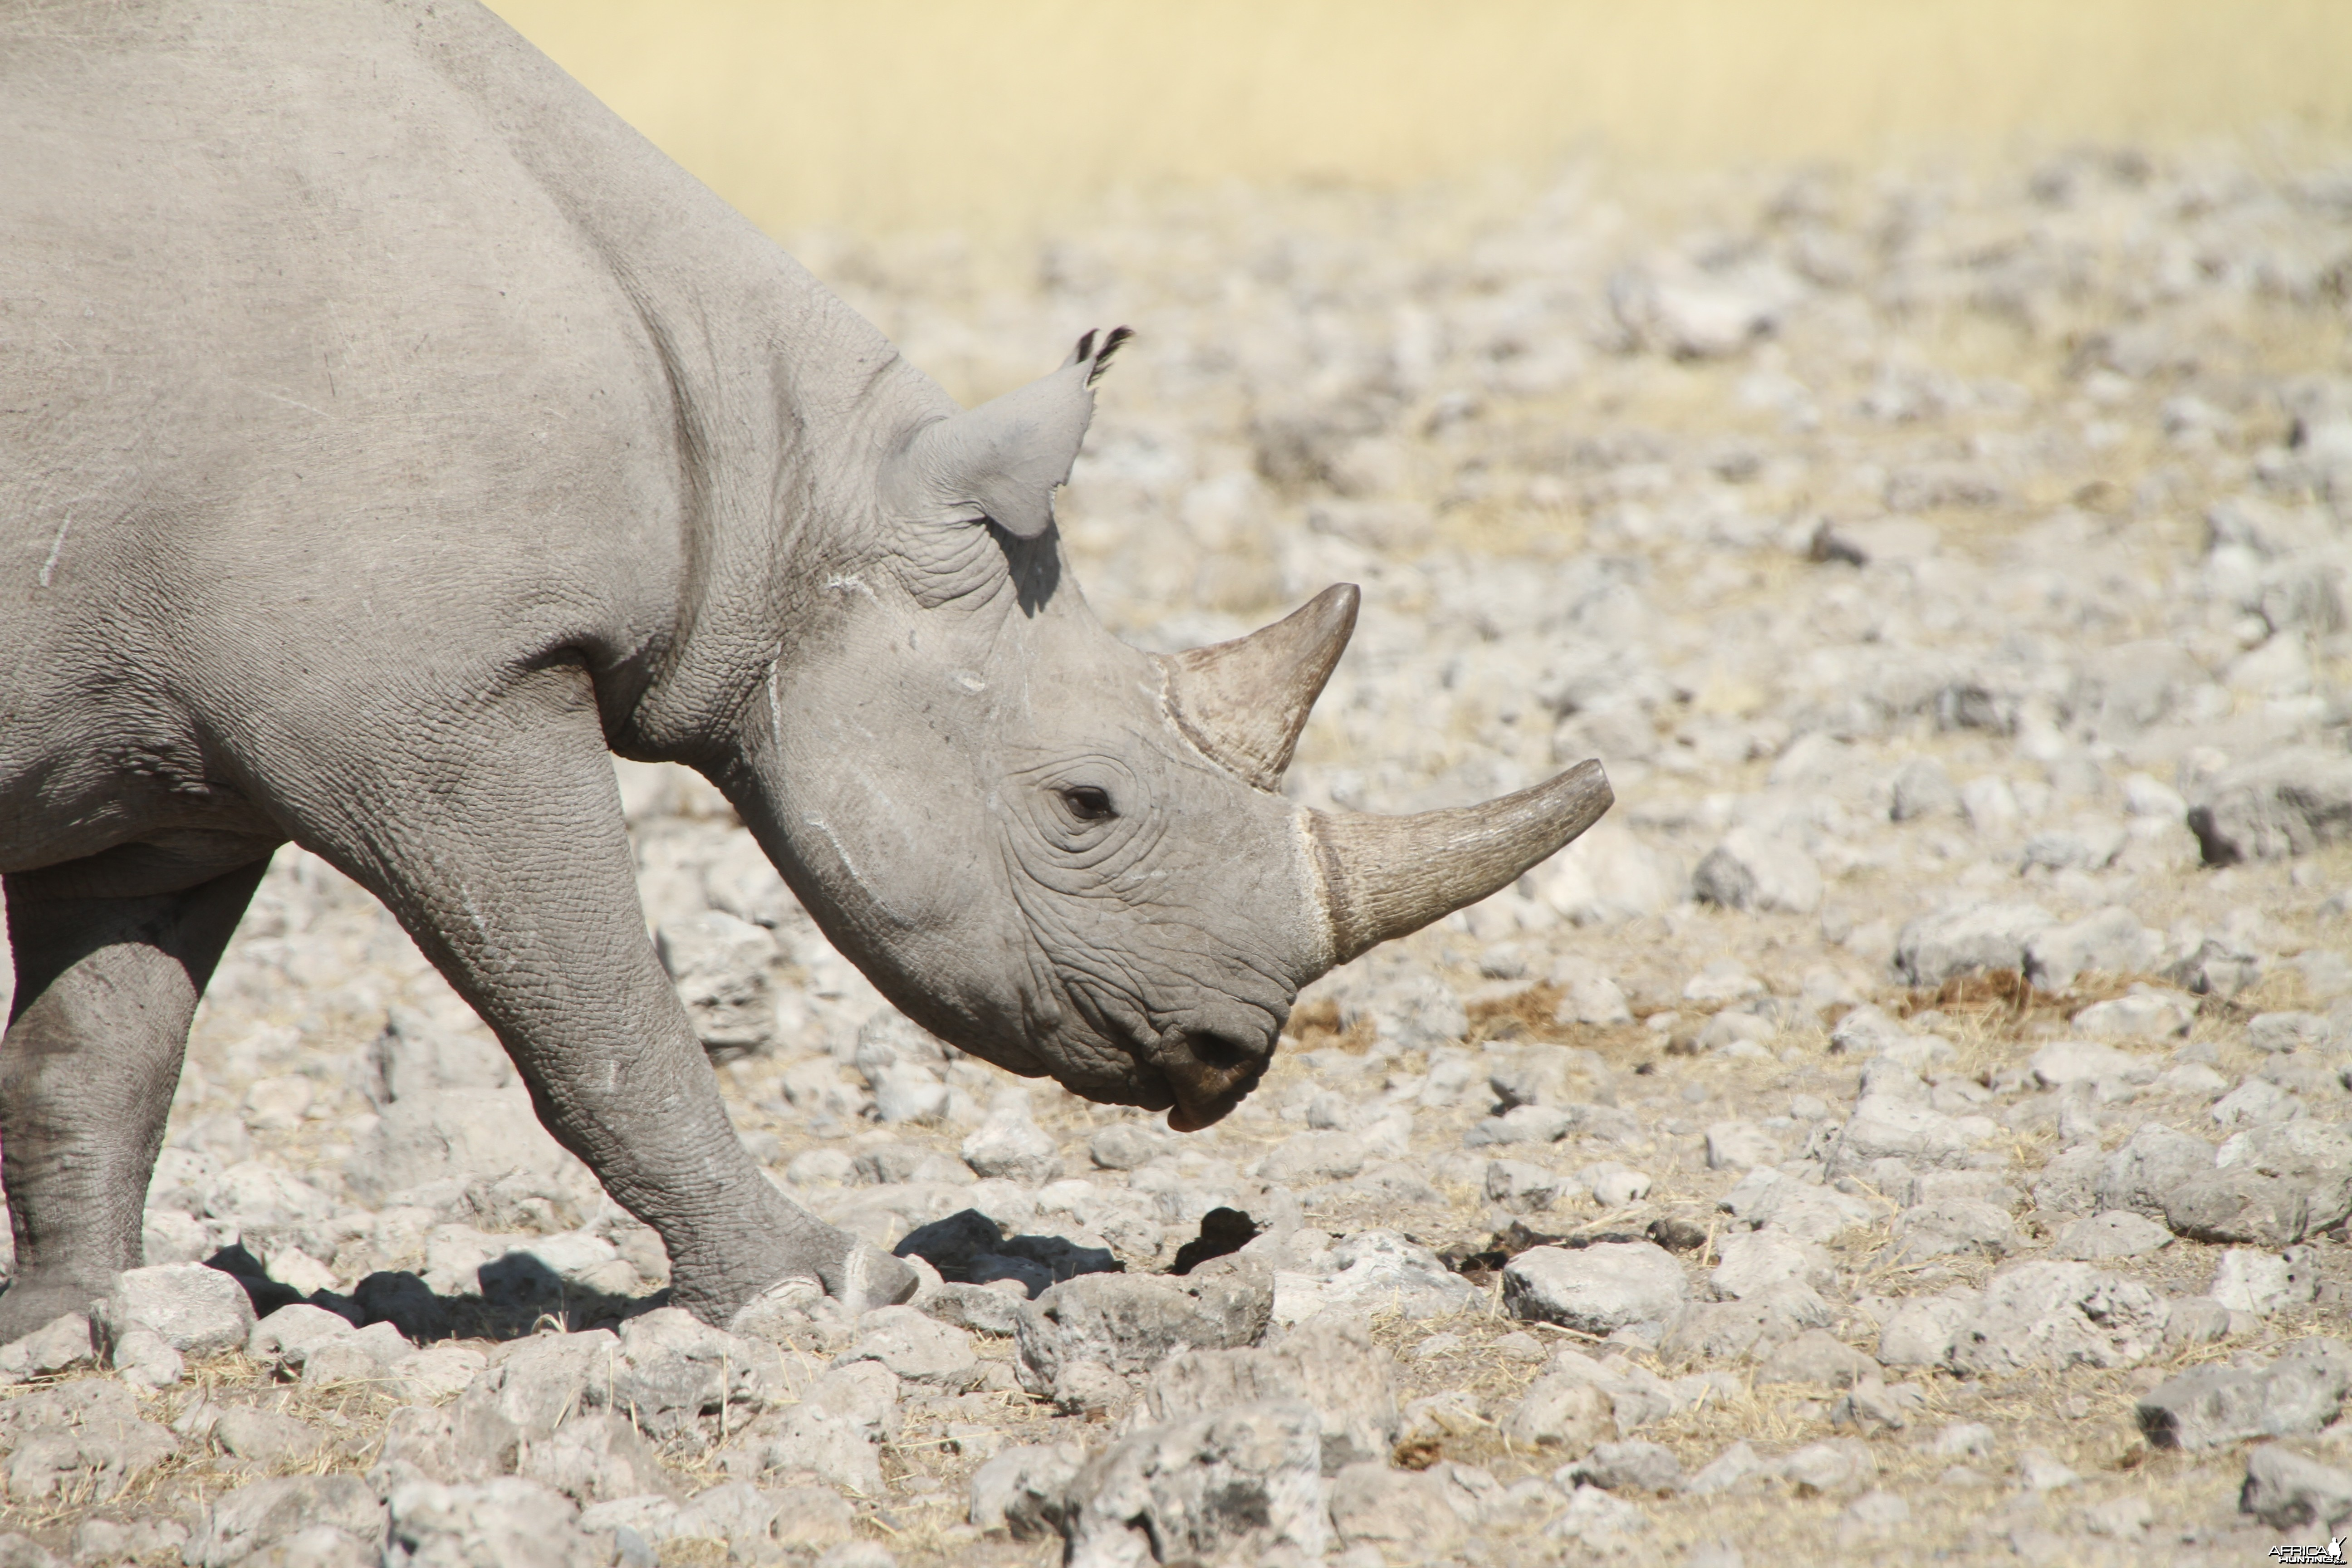 Black Rhino at Etosha National Park